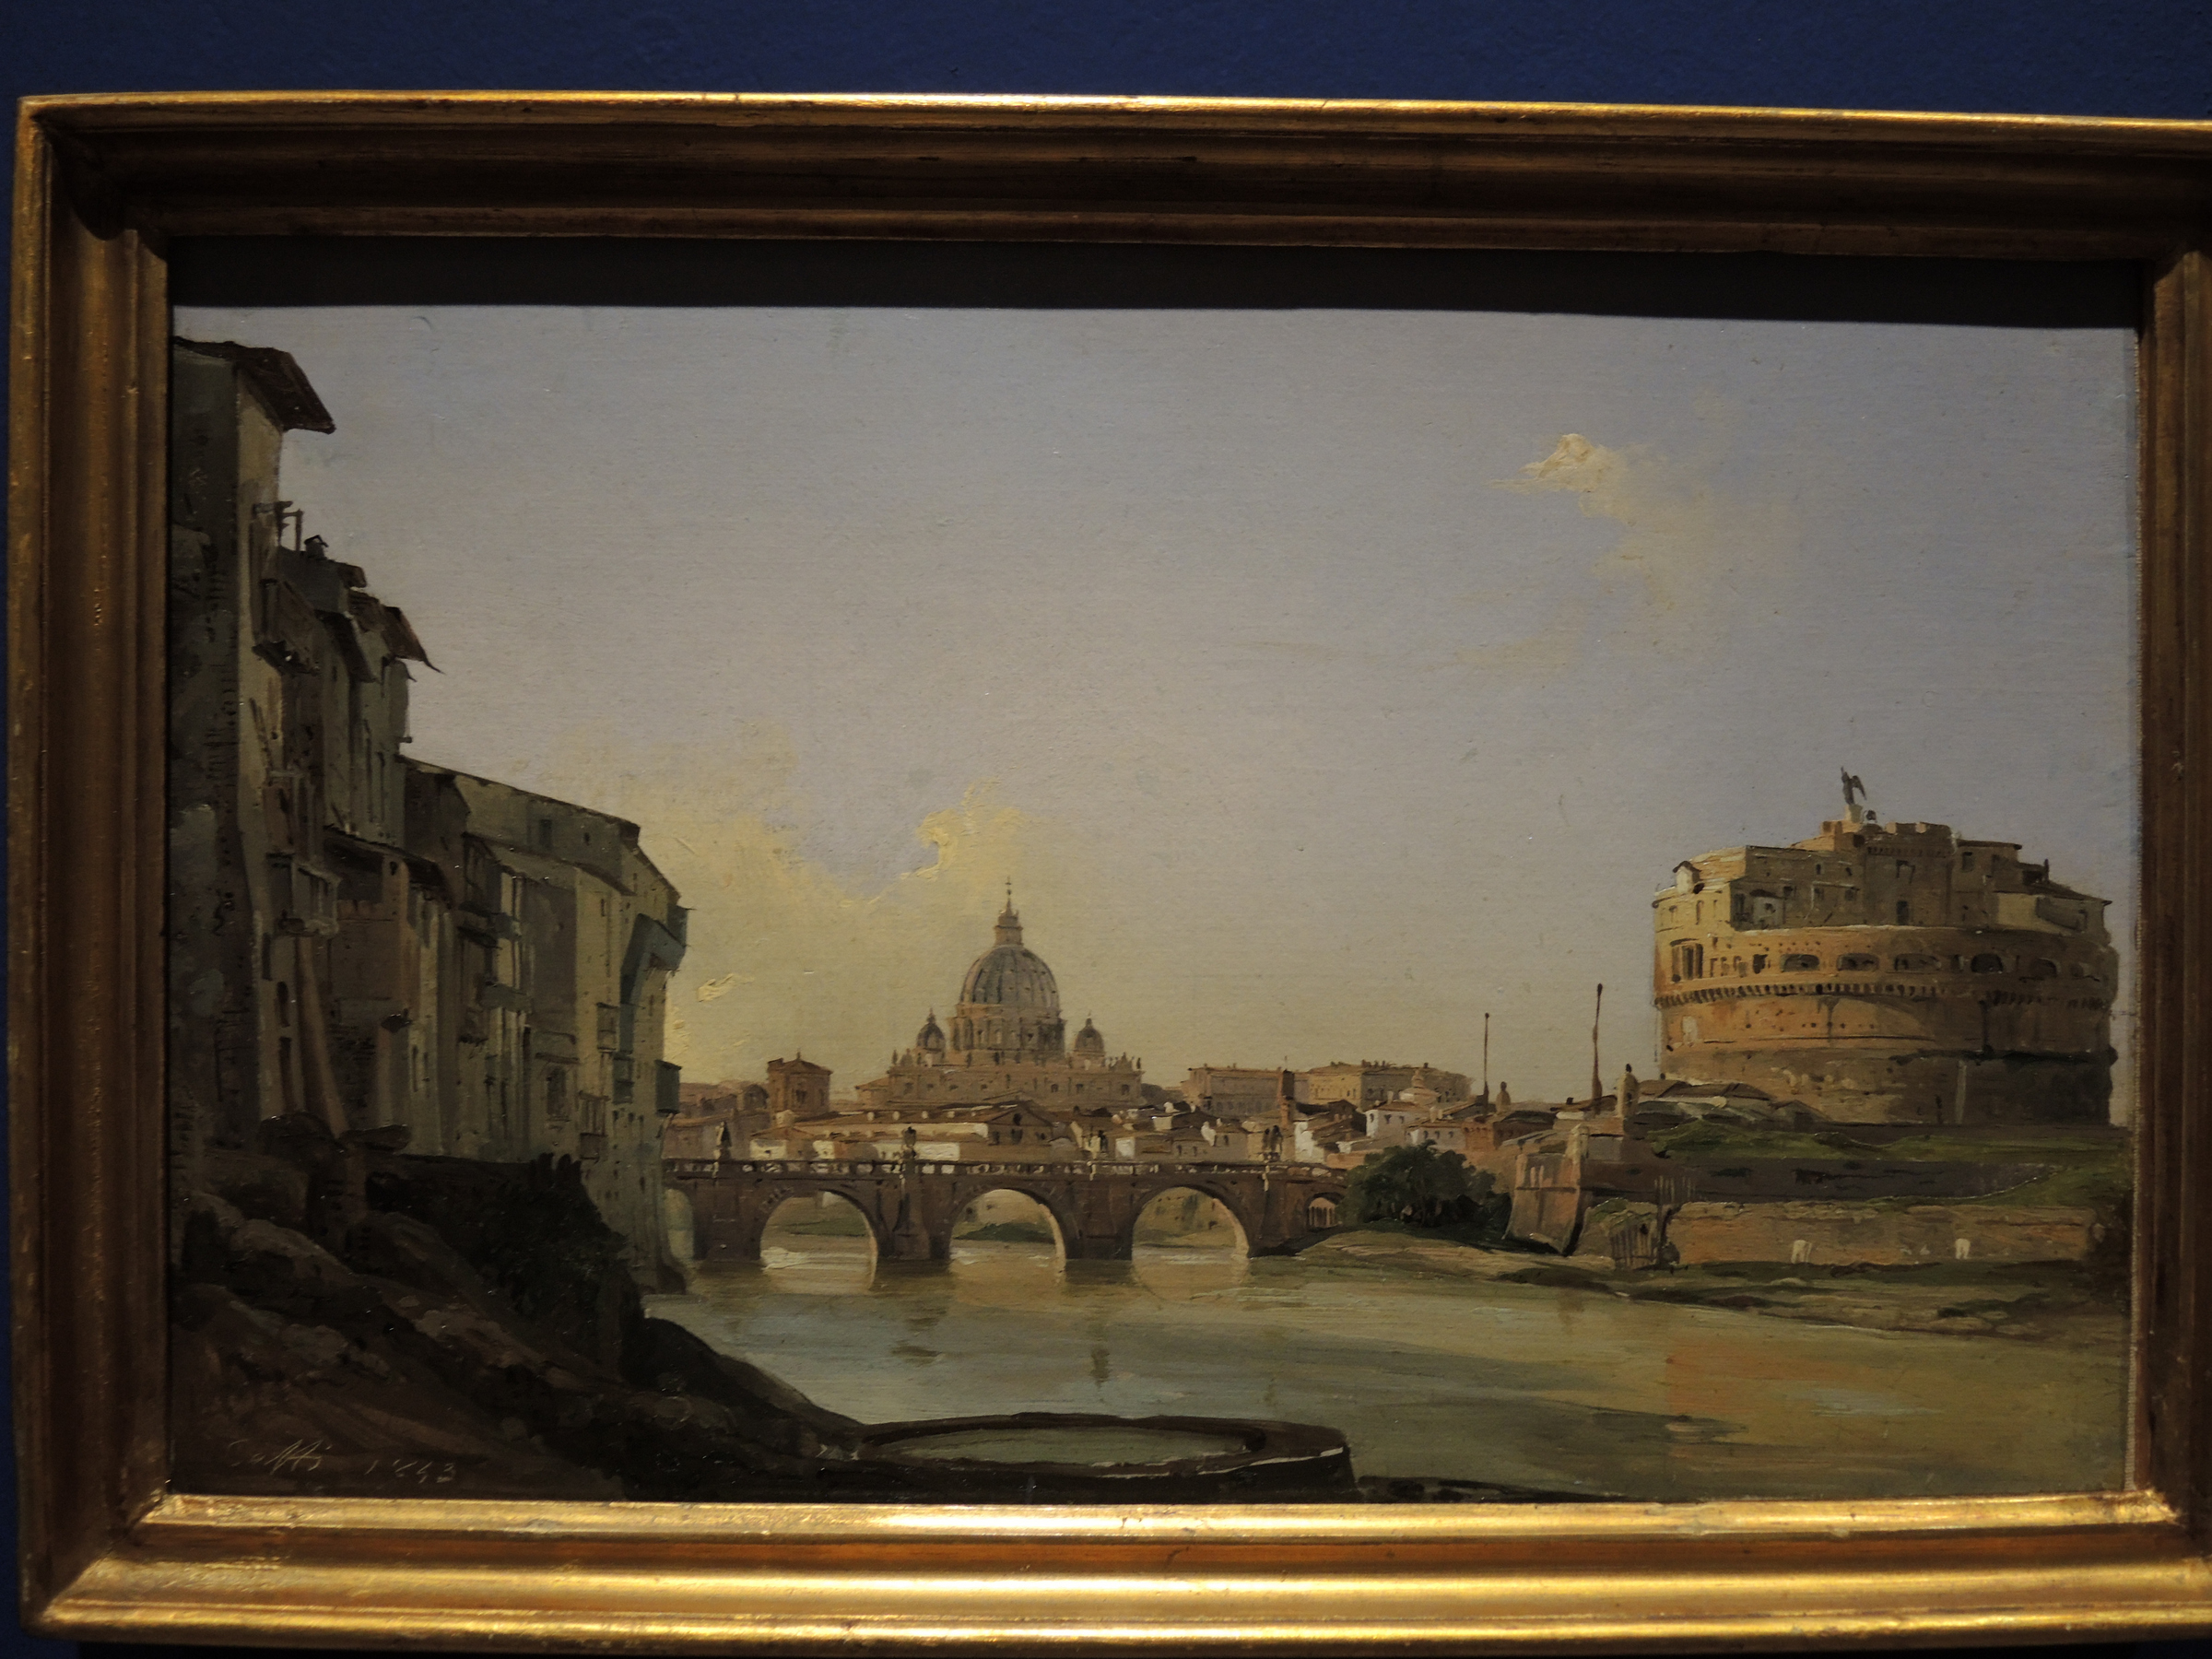 Rome, view of castel Sant'Angelo and St. Peter's dome from the Tiber - 1843